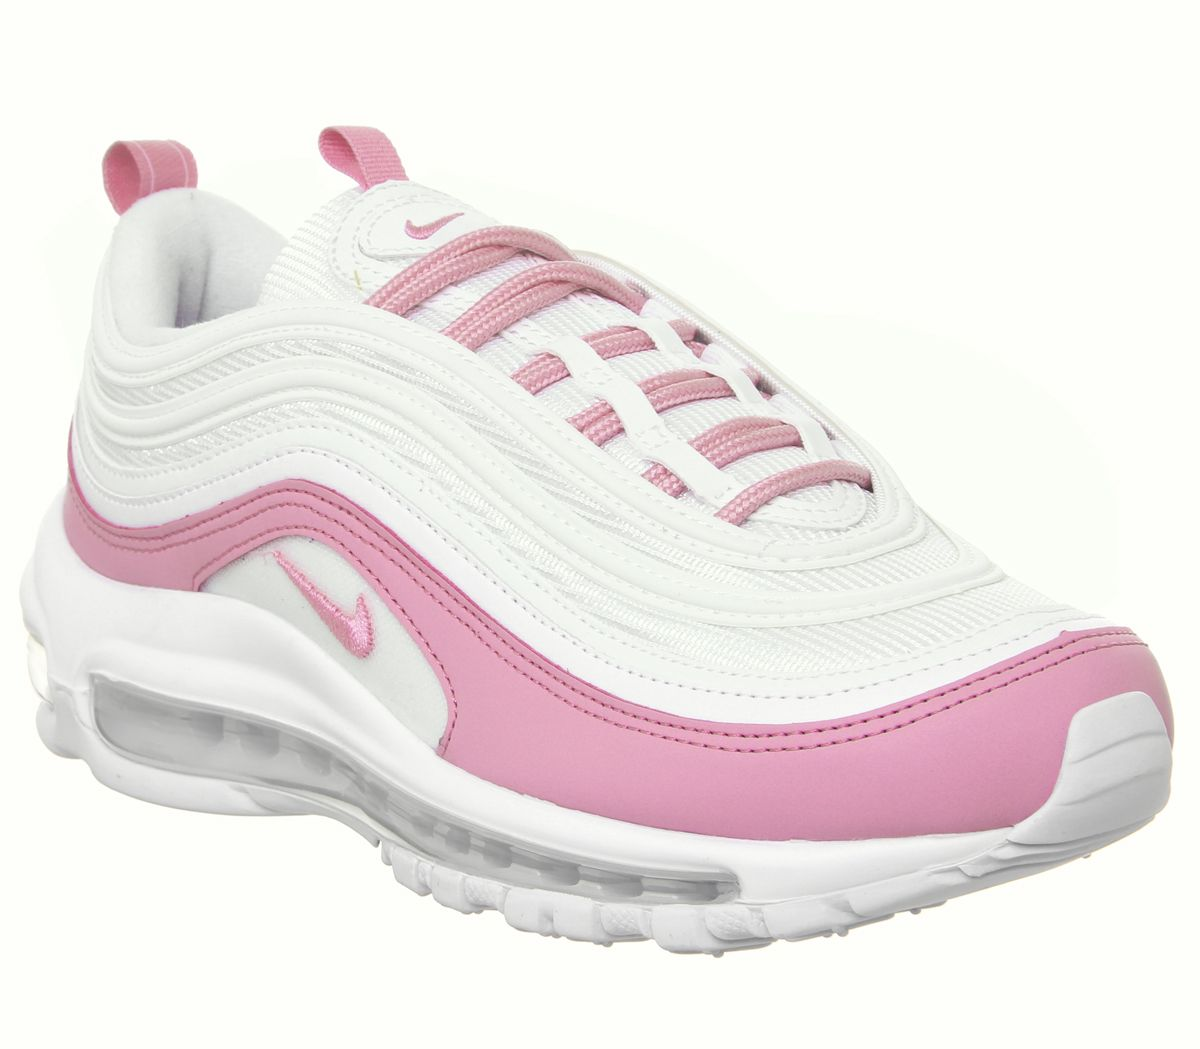 online retailer 7199c 9df0d Nike Air Max 97 Trainers White Psychic Pink - Hers trainers